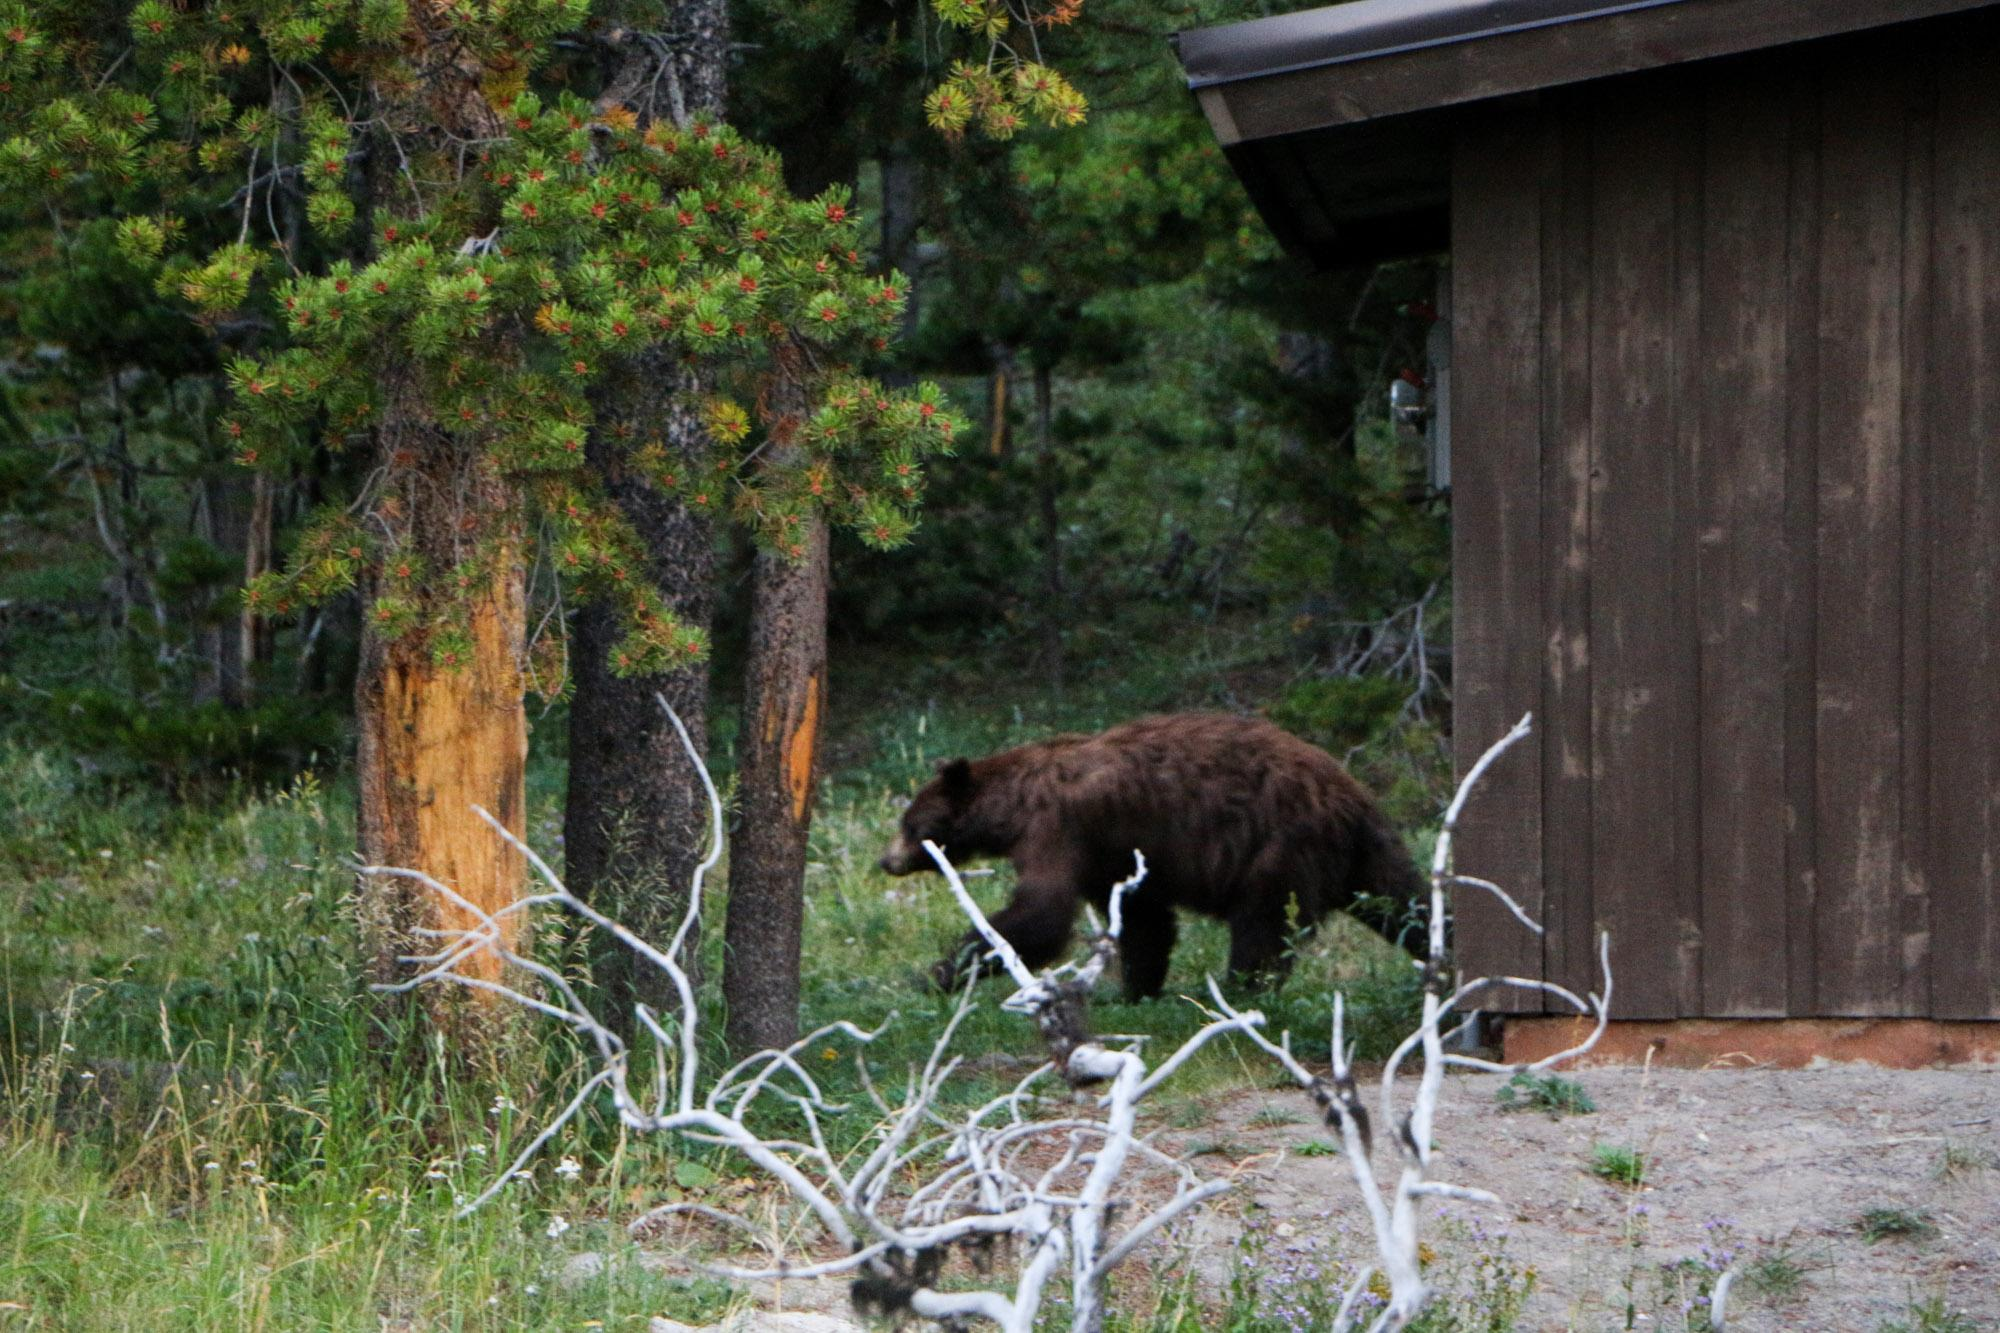 The only bear we saw in Yellowstone.